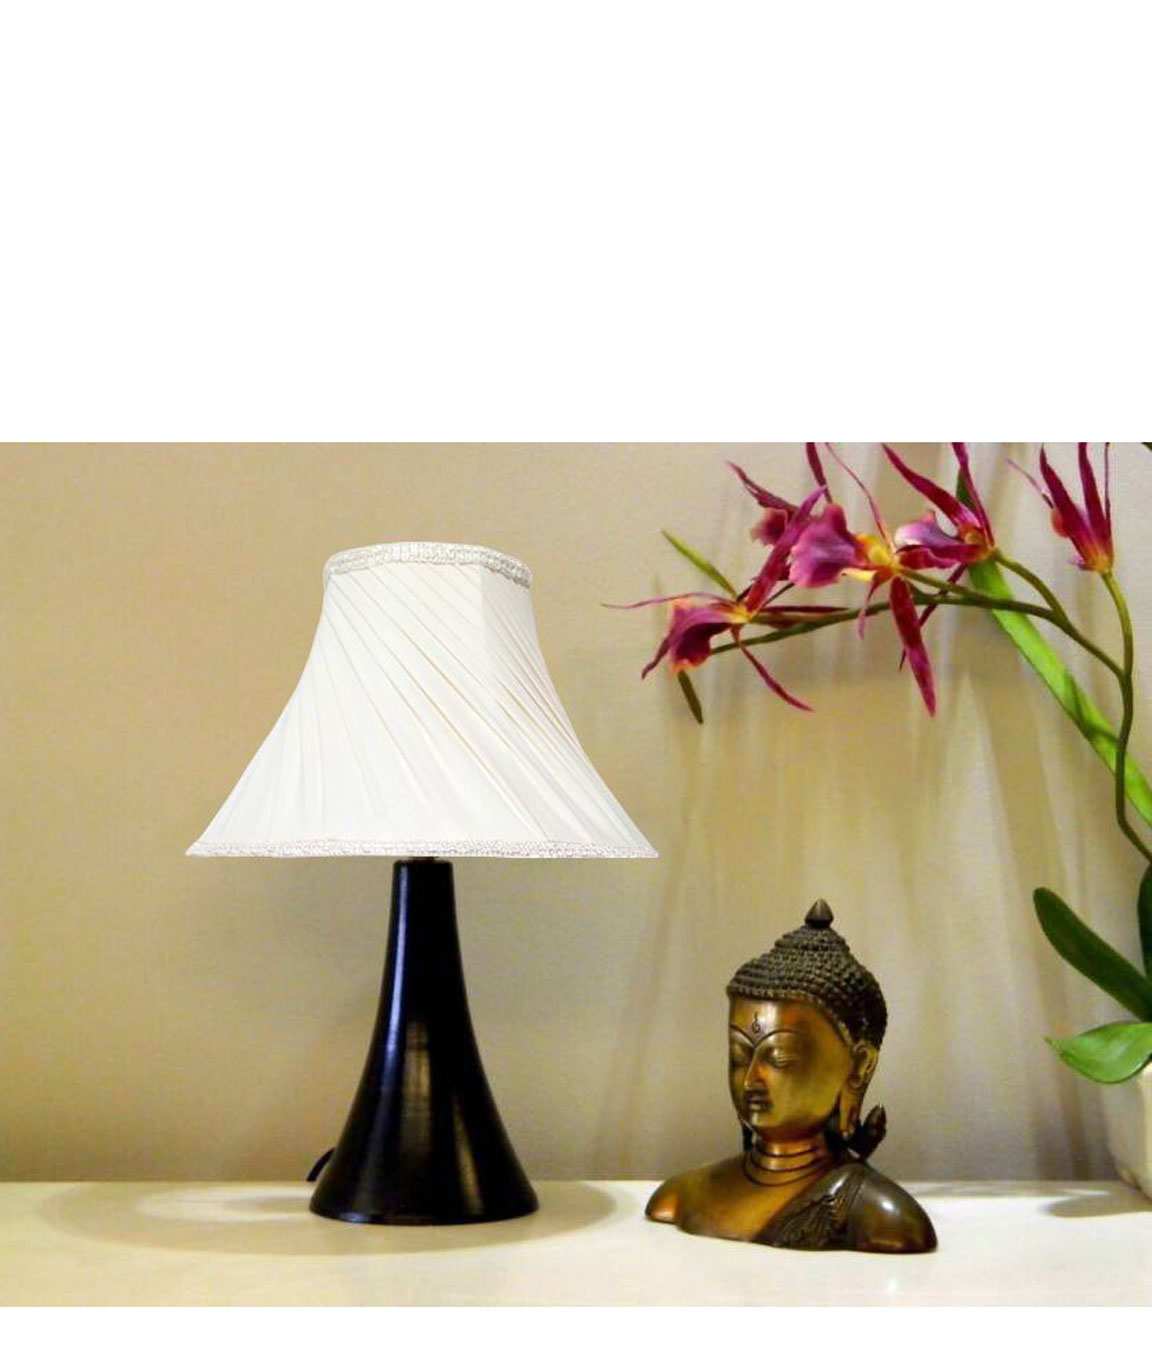 RDC Black Conical Stand Table Lamp with 10 Inches Round Slanting Pleated Cream with Lace Border Lamp Shade